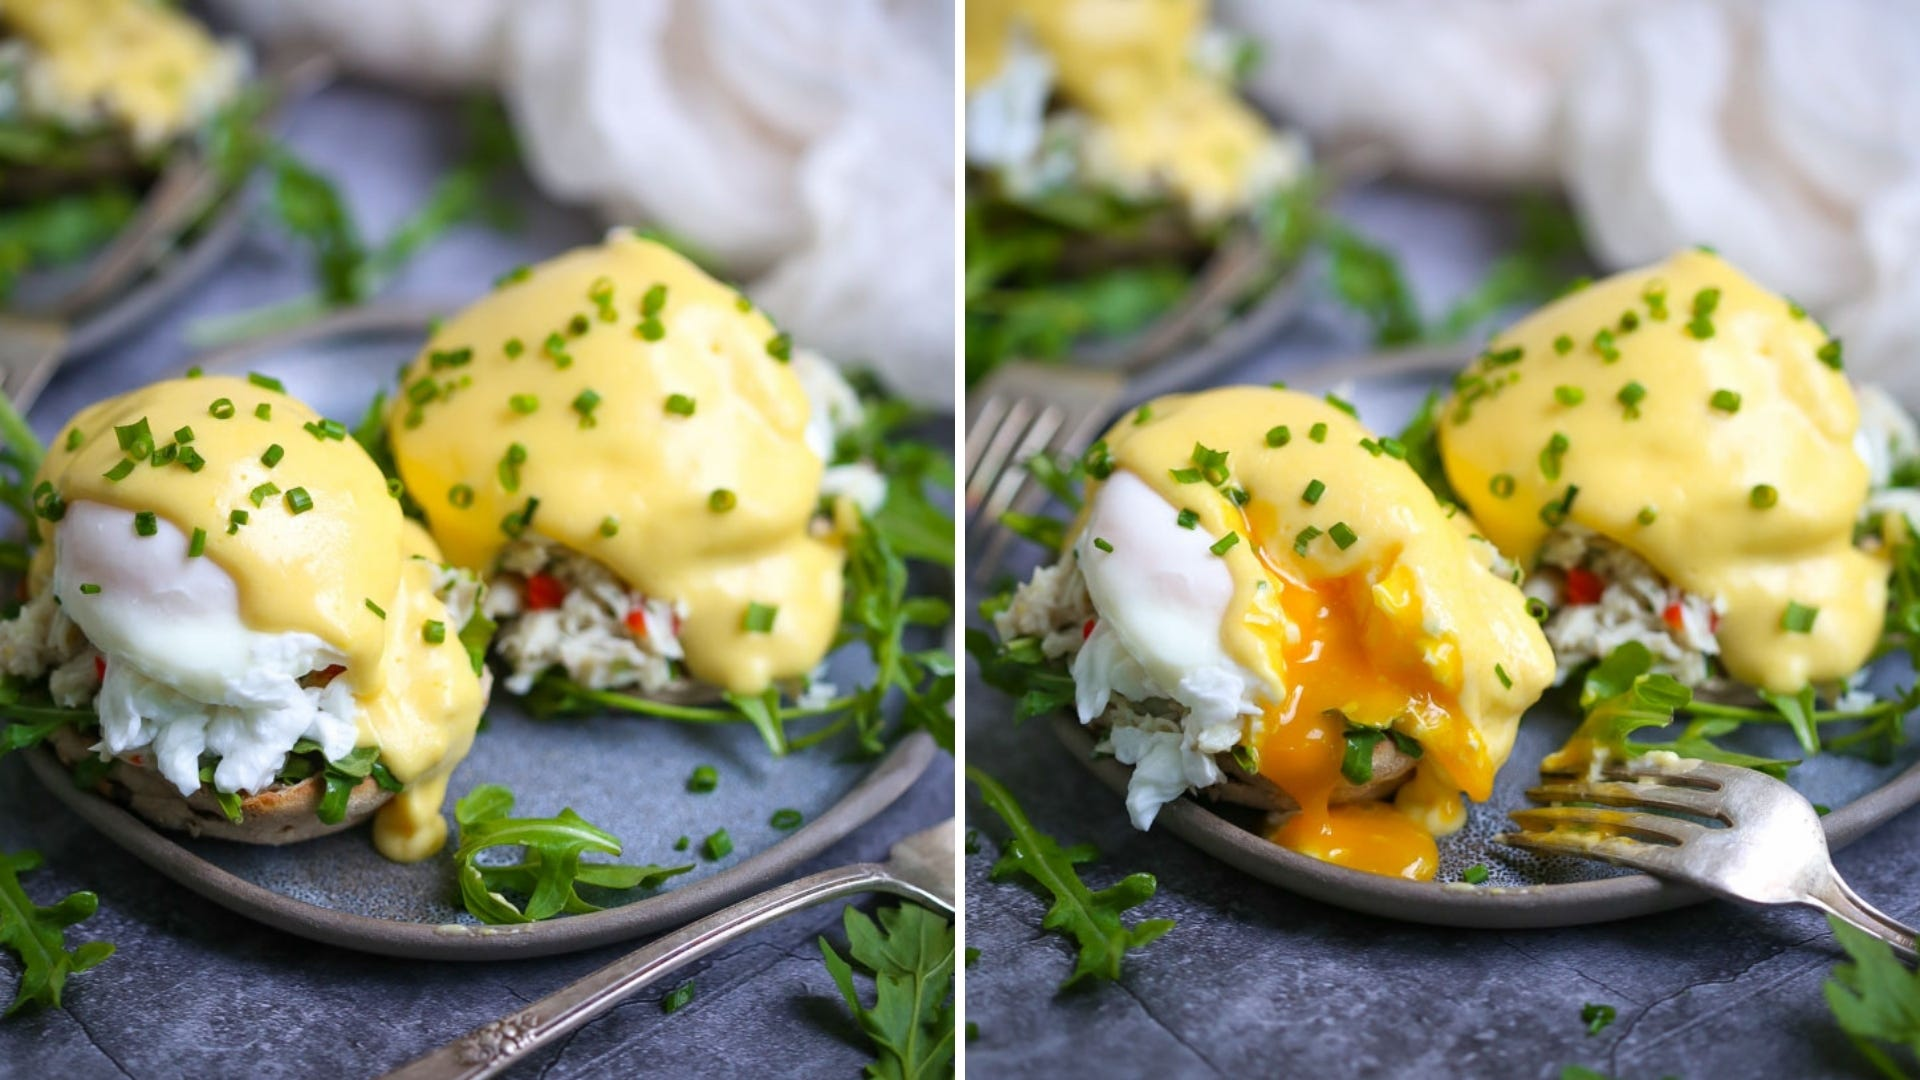 Eggs Benedict sitting on a plate made with crab meat salad and topped with chives.